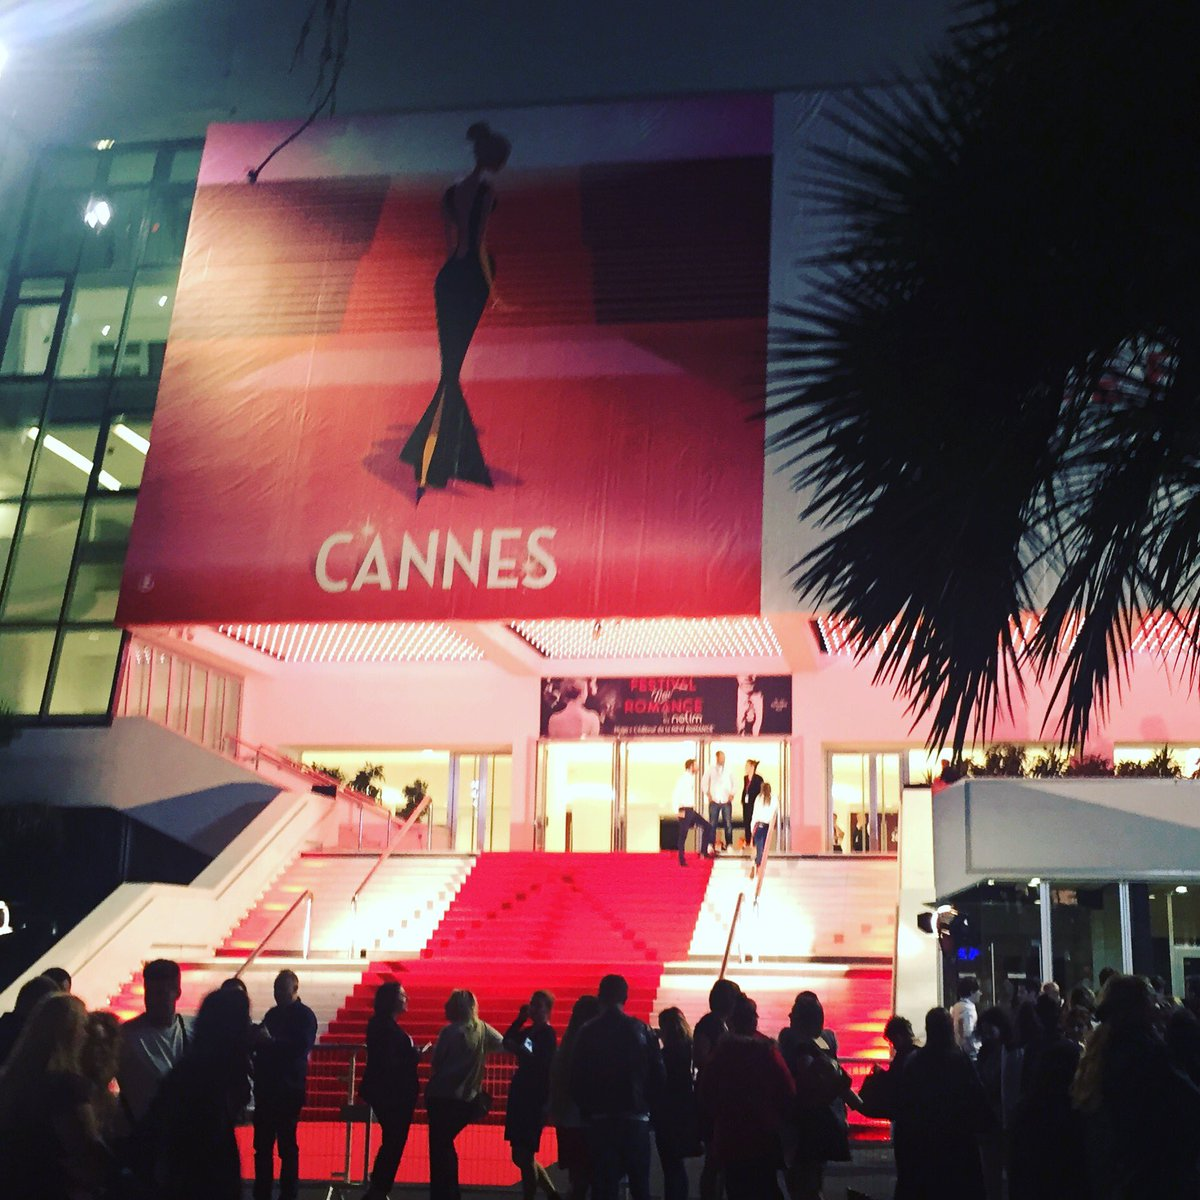 Soooo walking that staircase wasn&#39;t at all intimidating...  @passionflix #hollywooddirtmovie #newromancefilmfestival #cannes <br>http://pic.twitter.com/uoZmo5k7vL